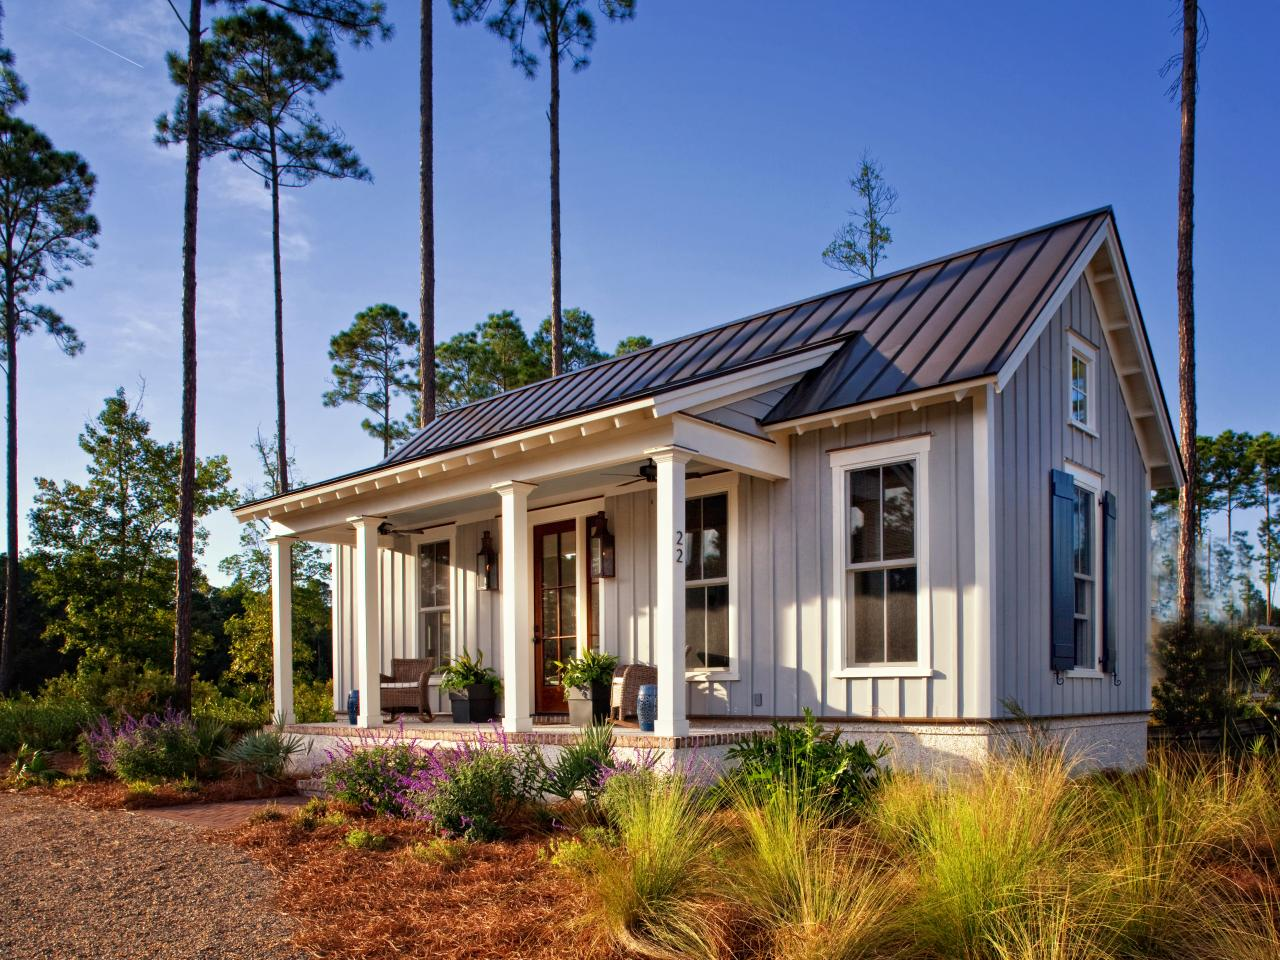 lowcountry style tiny home provides guest, design studio space